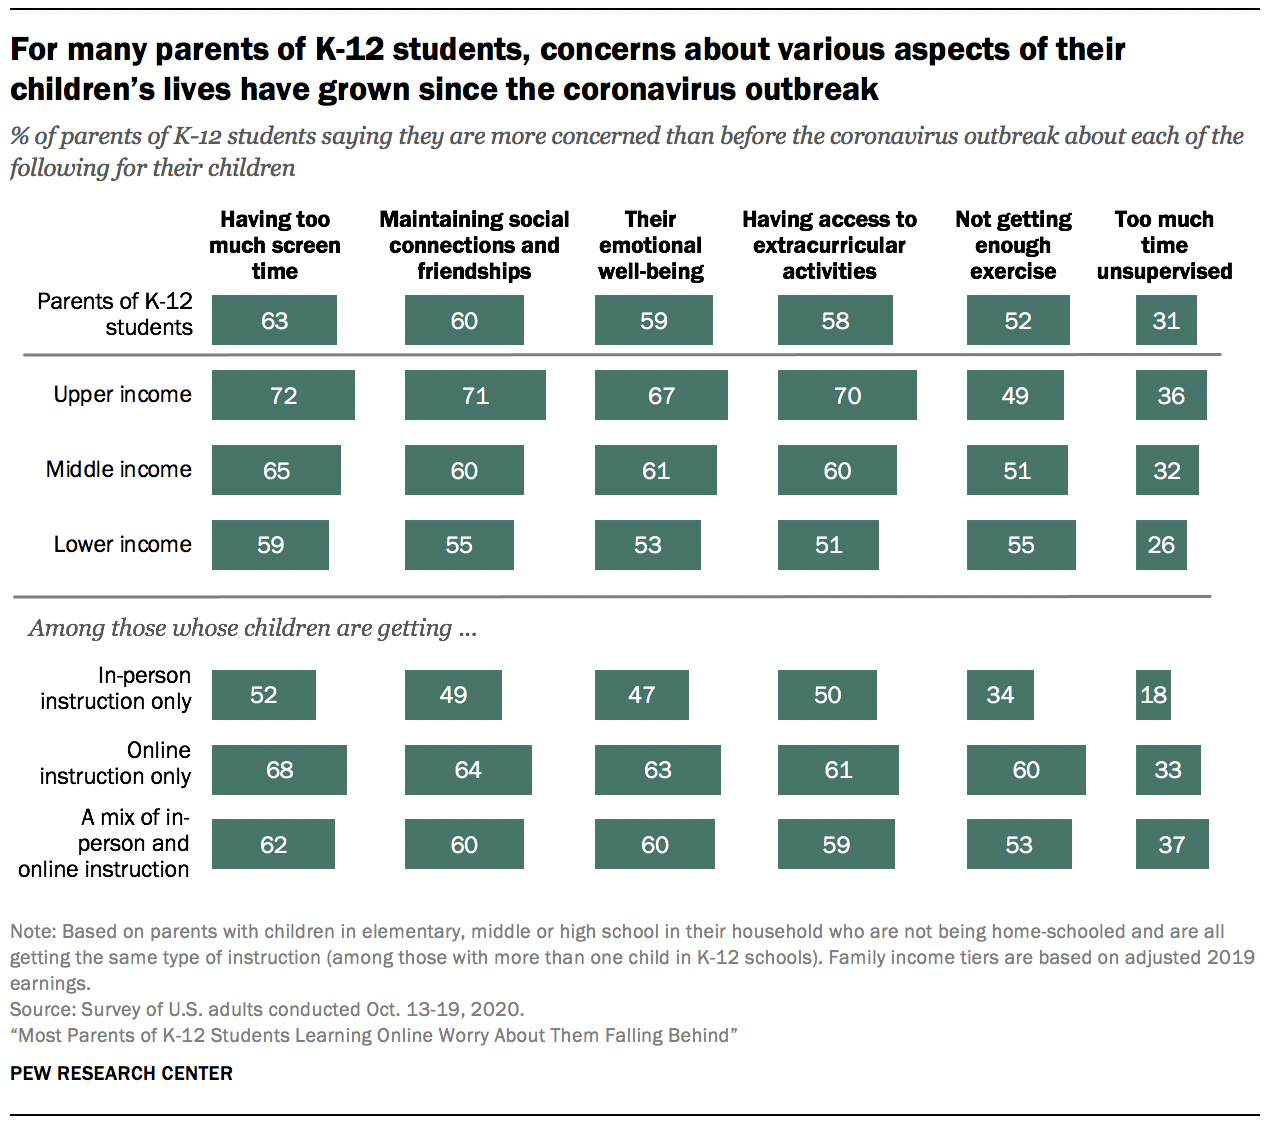 For many parents of K-12 students, concerns about various aspects of their children's lives have grown since the coronavirus outbreak